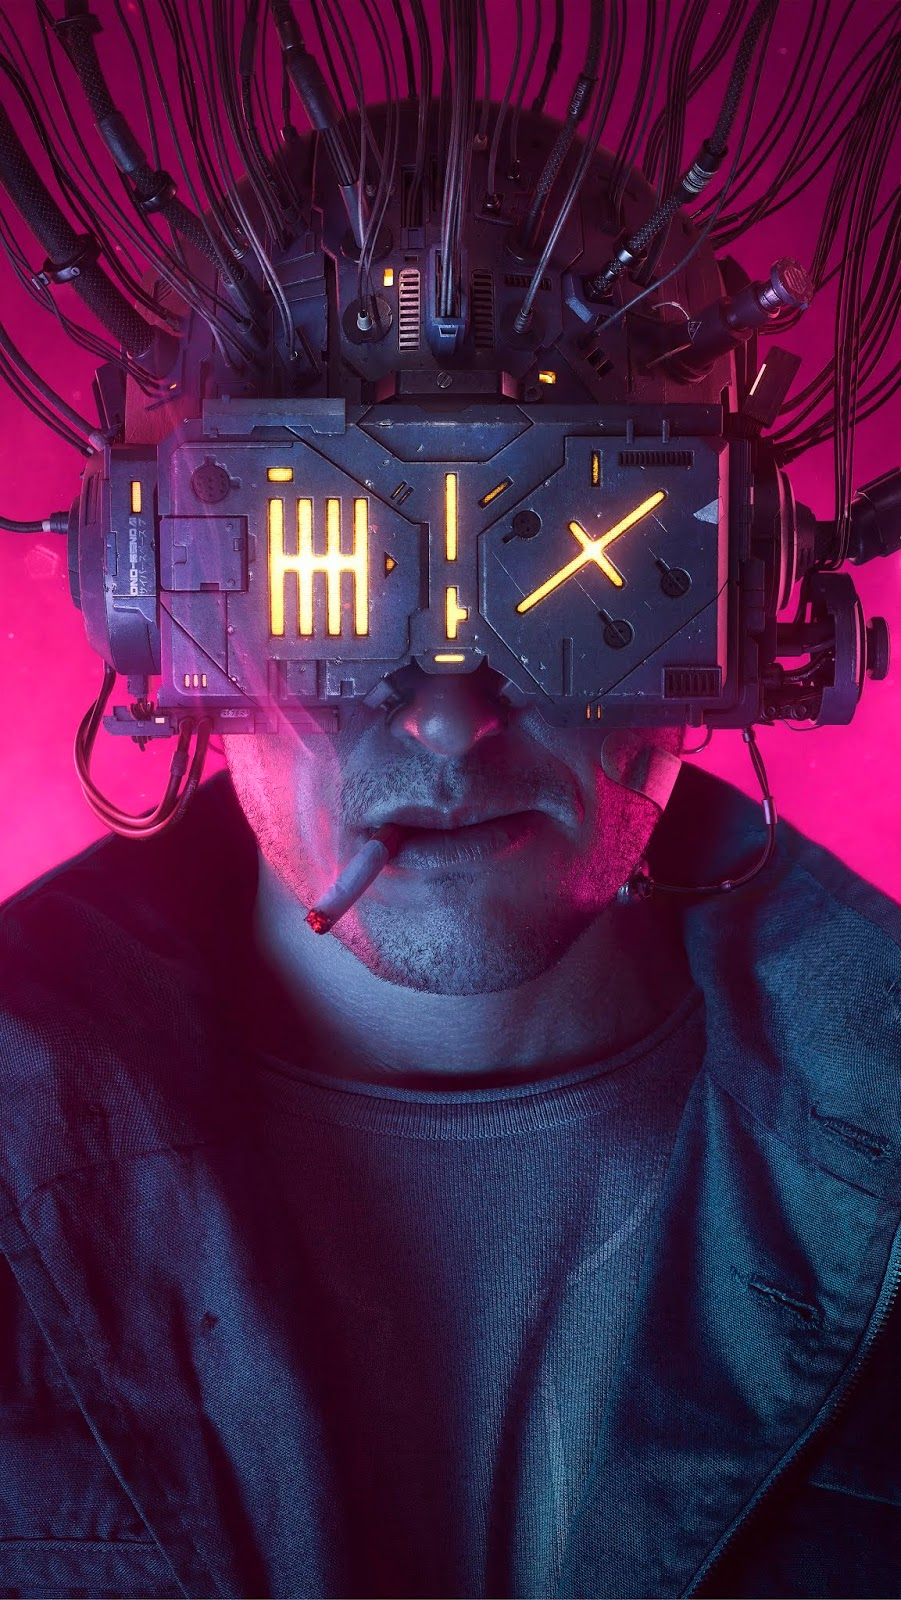 4k wallpaper phone - cyberpunk